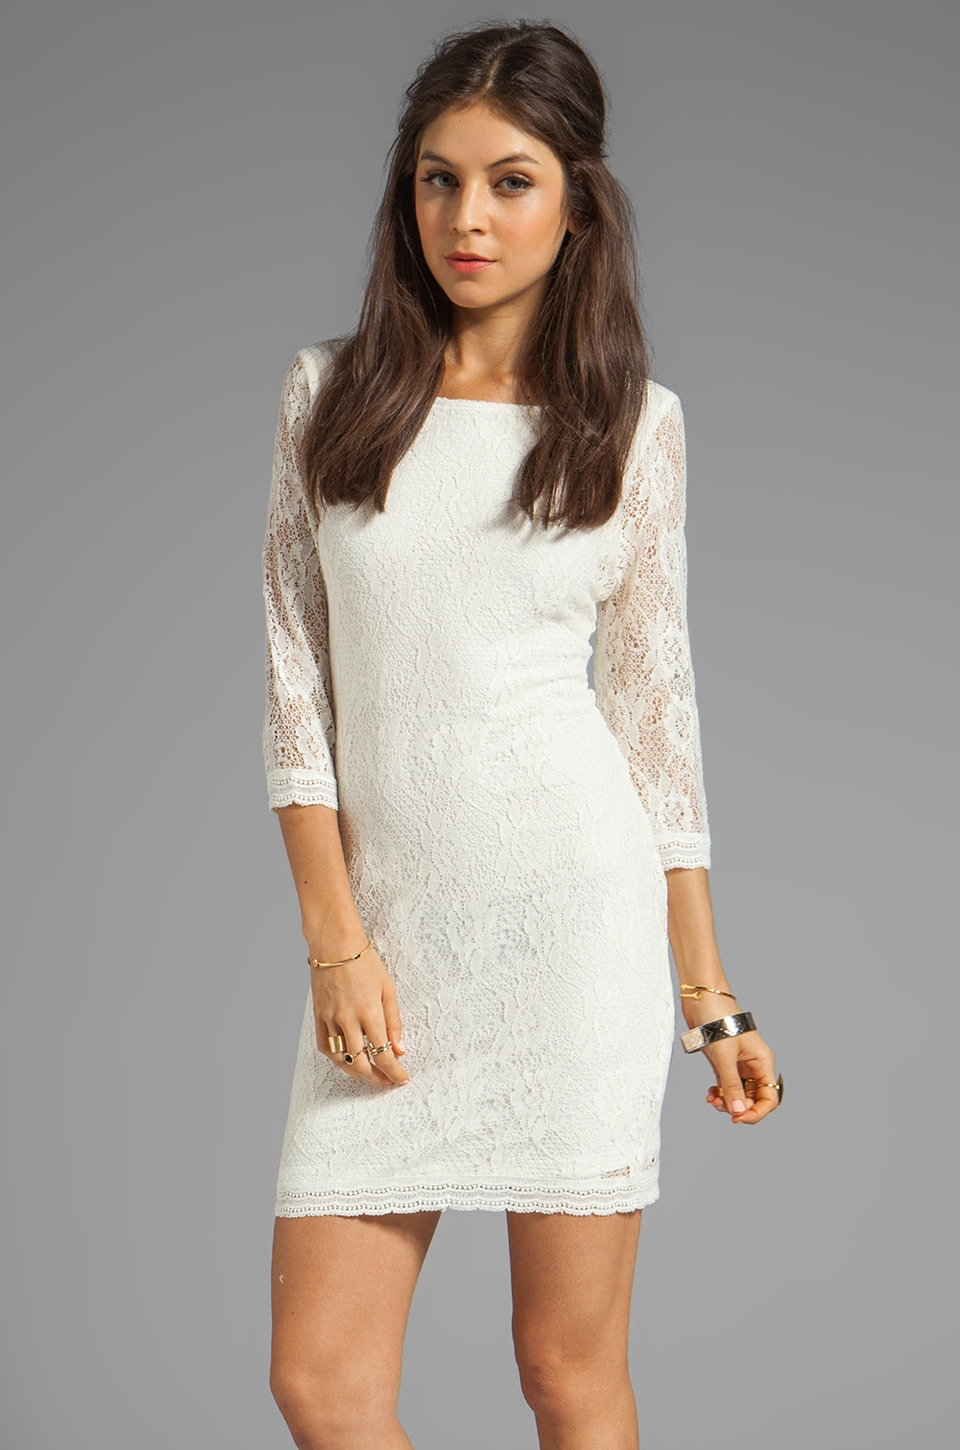 Sanctuary Provence Blues Lace Dress in Ivory